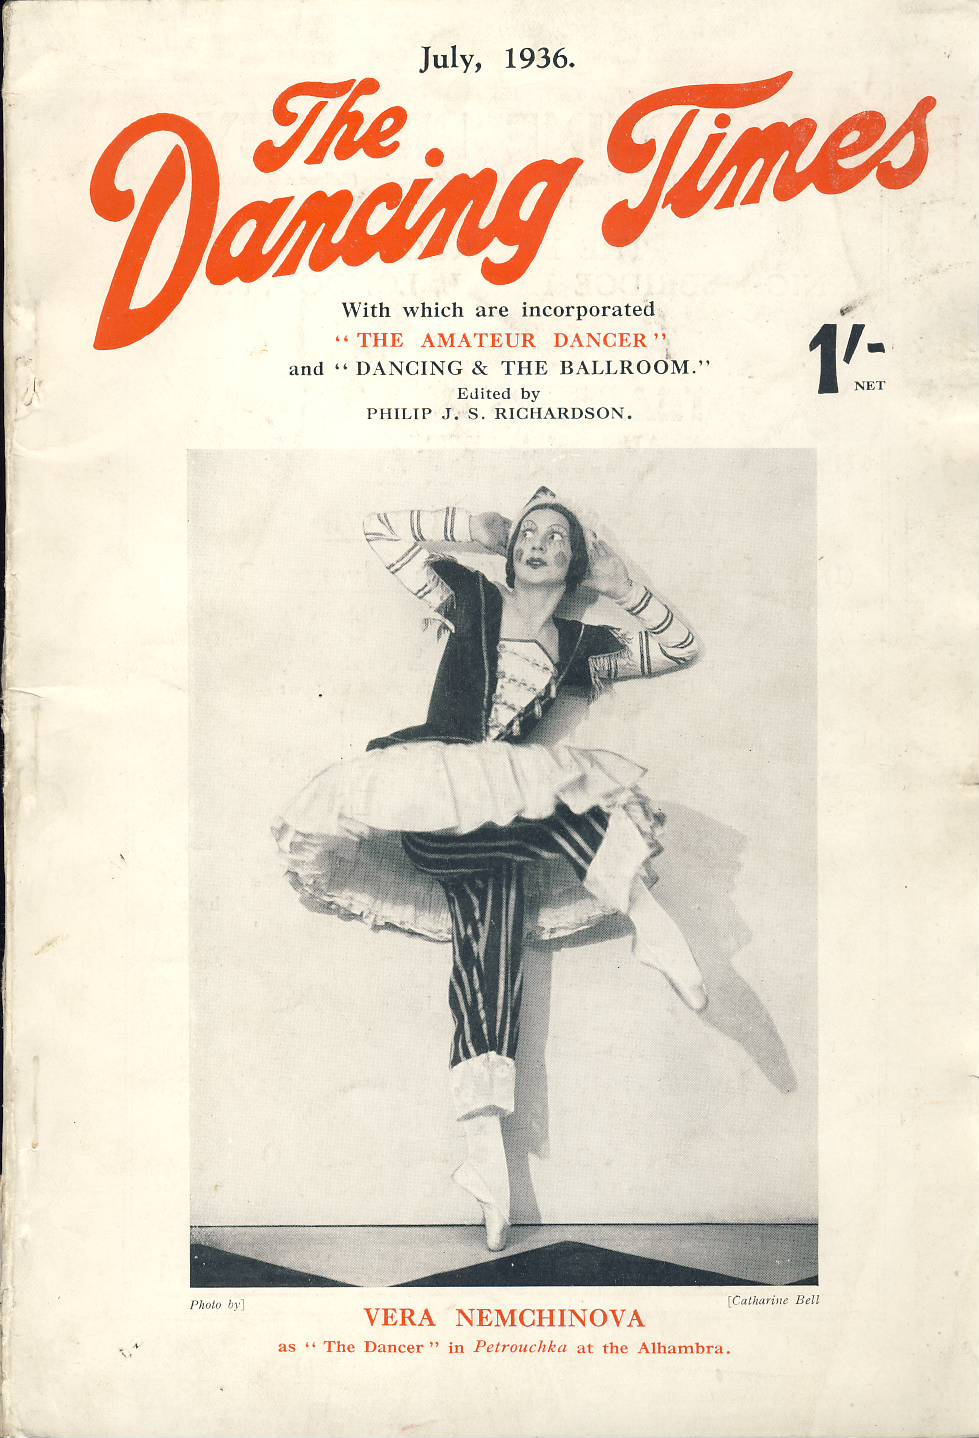 July 1936 The Dancing Times magazine VERA NEMCHINOVA  Jura Lazovsky and Marian Ladre Danses Slaves et Tsiganes photo on inside front cover. A review of dancing in its many phases - containing articles and photos. Some vintage adverts for dancing schools. This is a vintage magazine. Text and photos clean and bright inside. The covers are badly marked with scuffs and tears to spines. Staples rusting so cover coming away from text. Please read the full description and see photo.